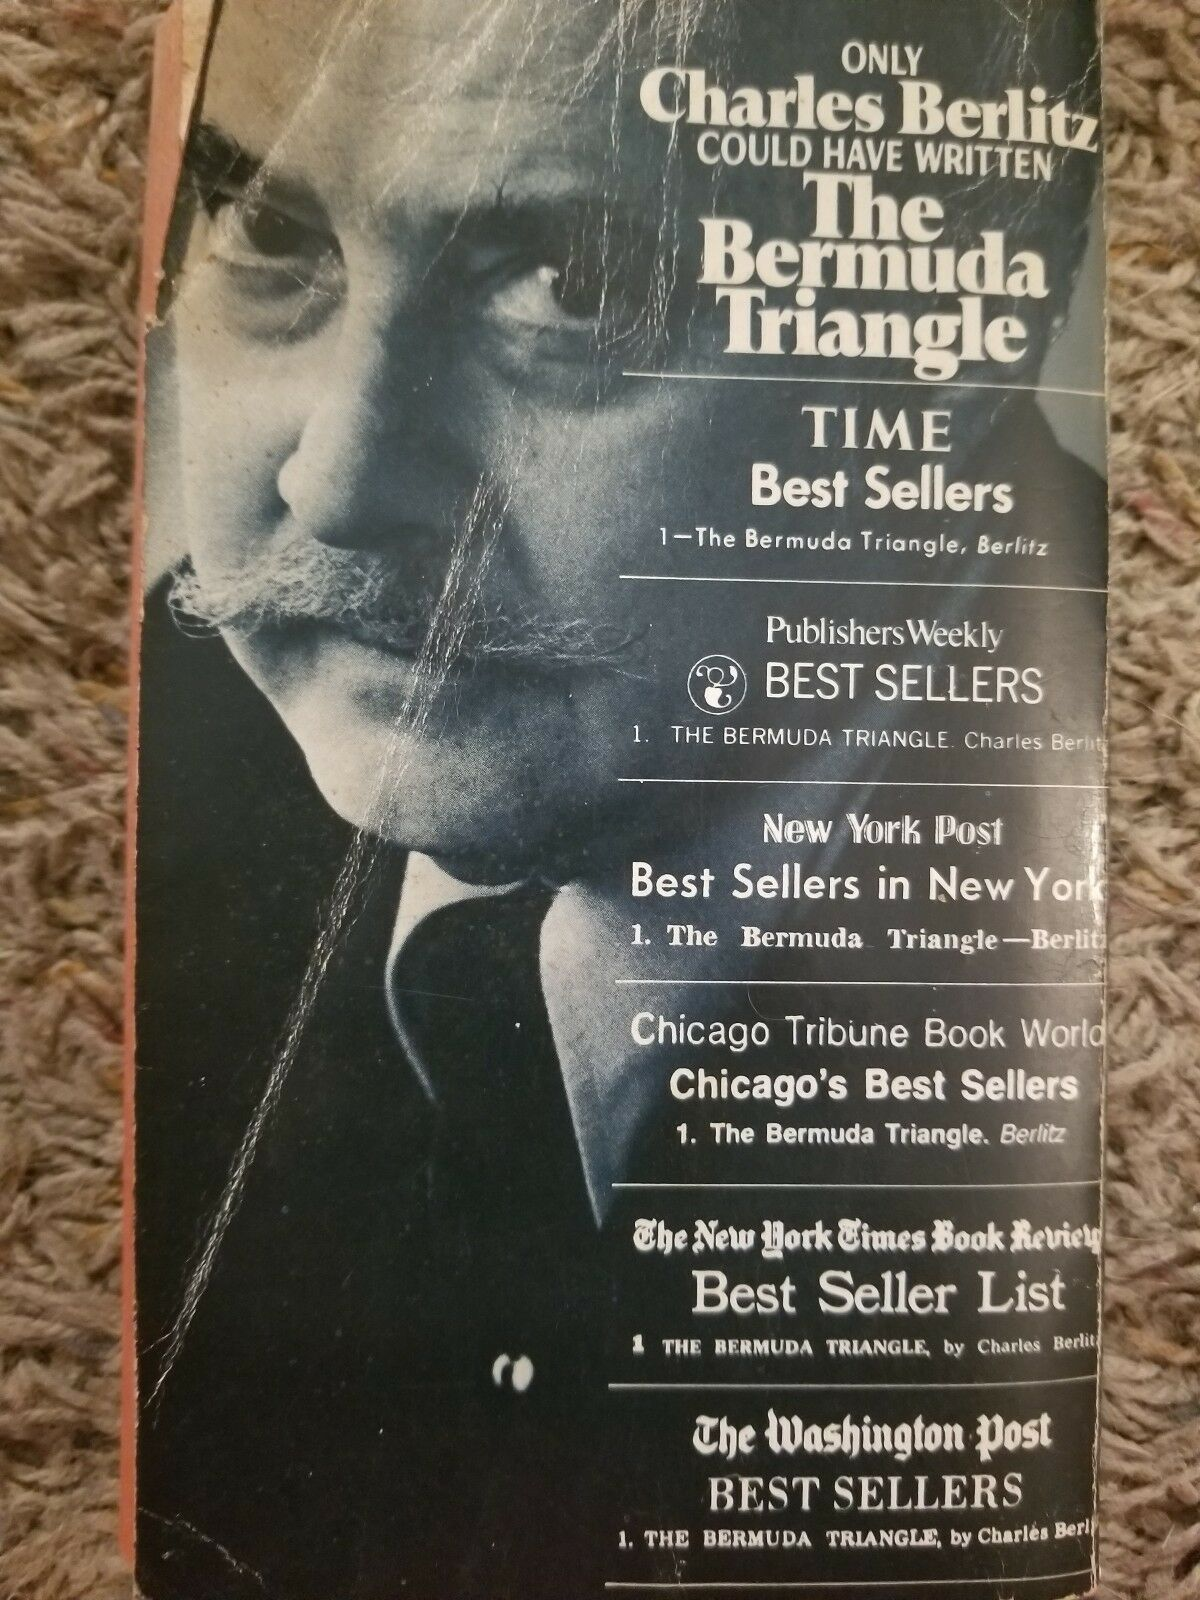 Charles berlitz book the bermuda triangle